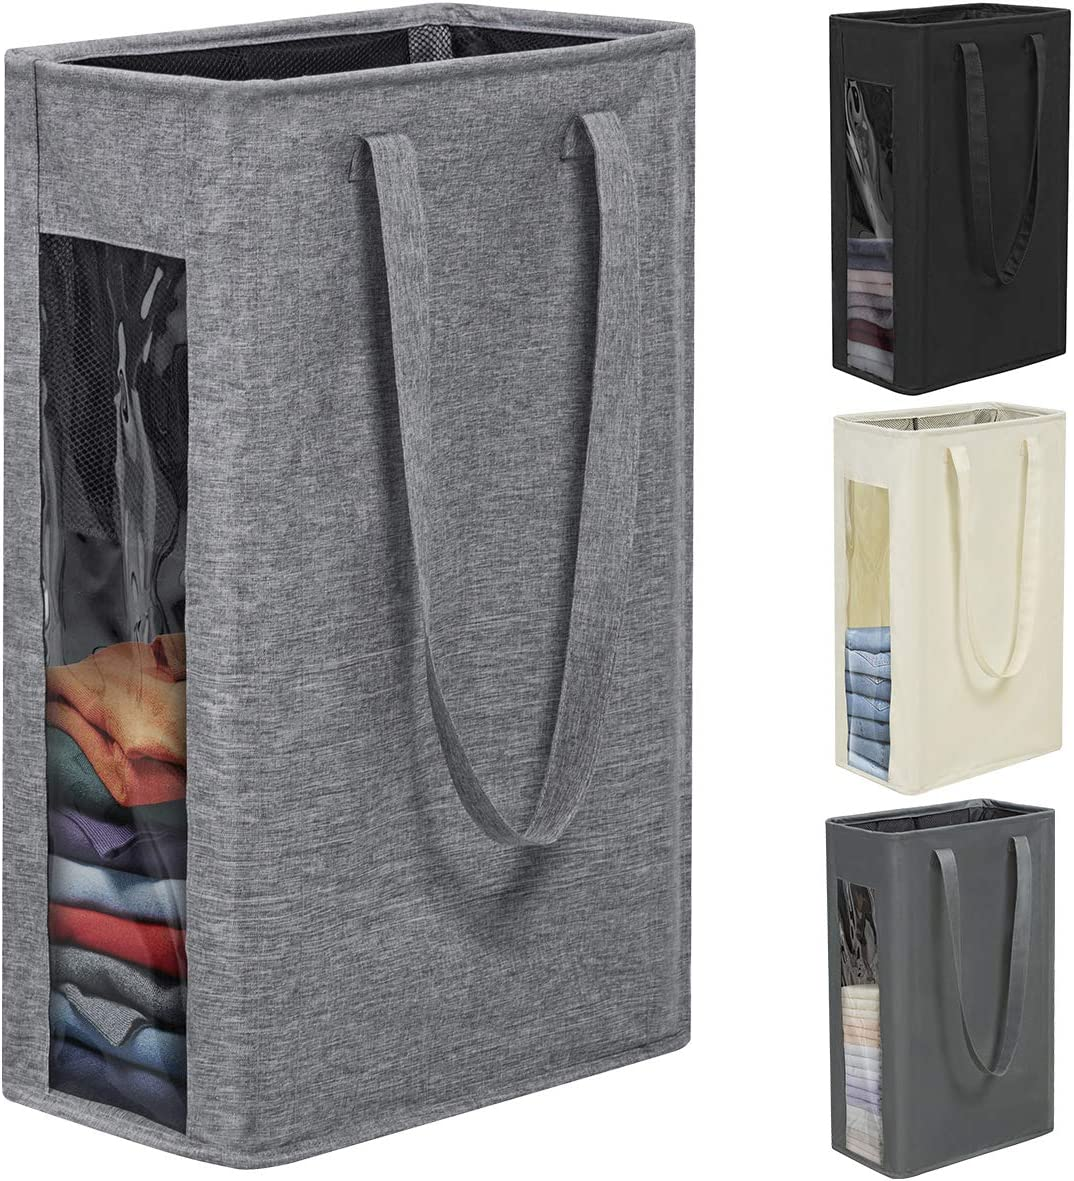 Chrislley 66L Slim Laundry Hamper Tall Laundry Basket Narrow Laundry Hamper Visual Window Small Laundry Hamper Large Baskets for Laundry(Upgrade-Grey)